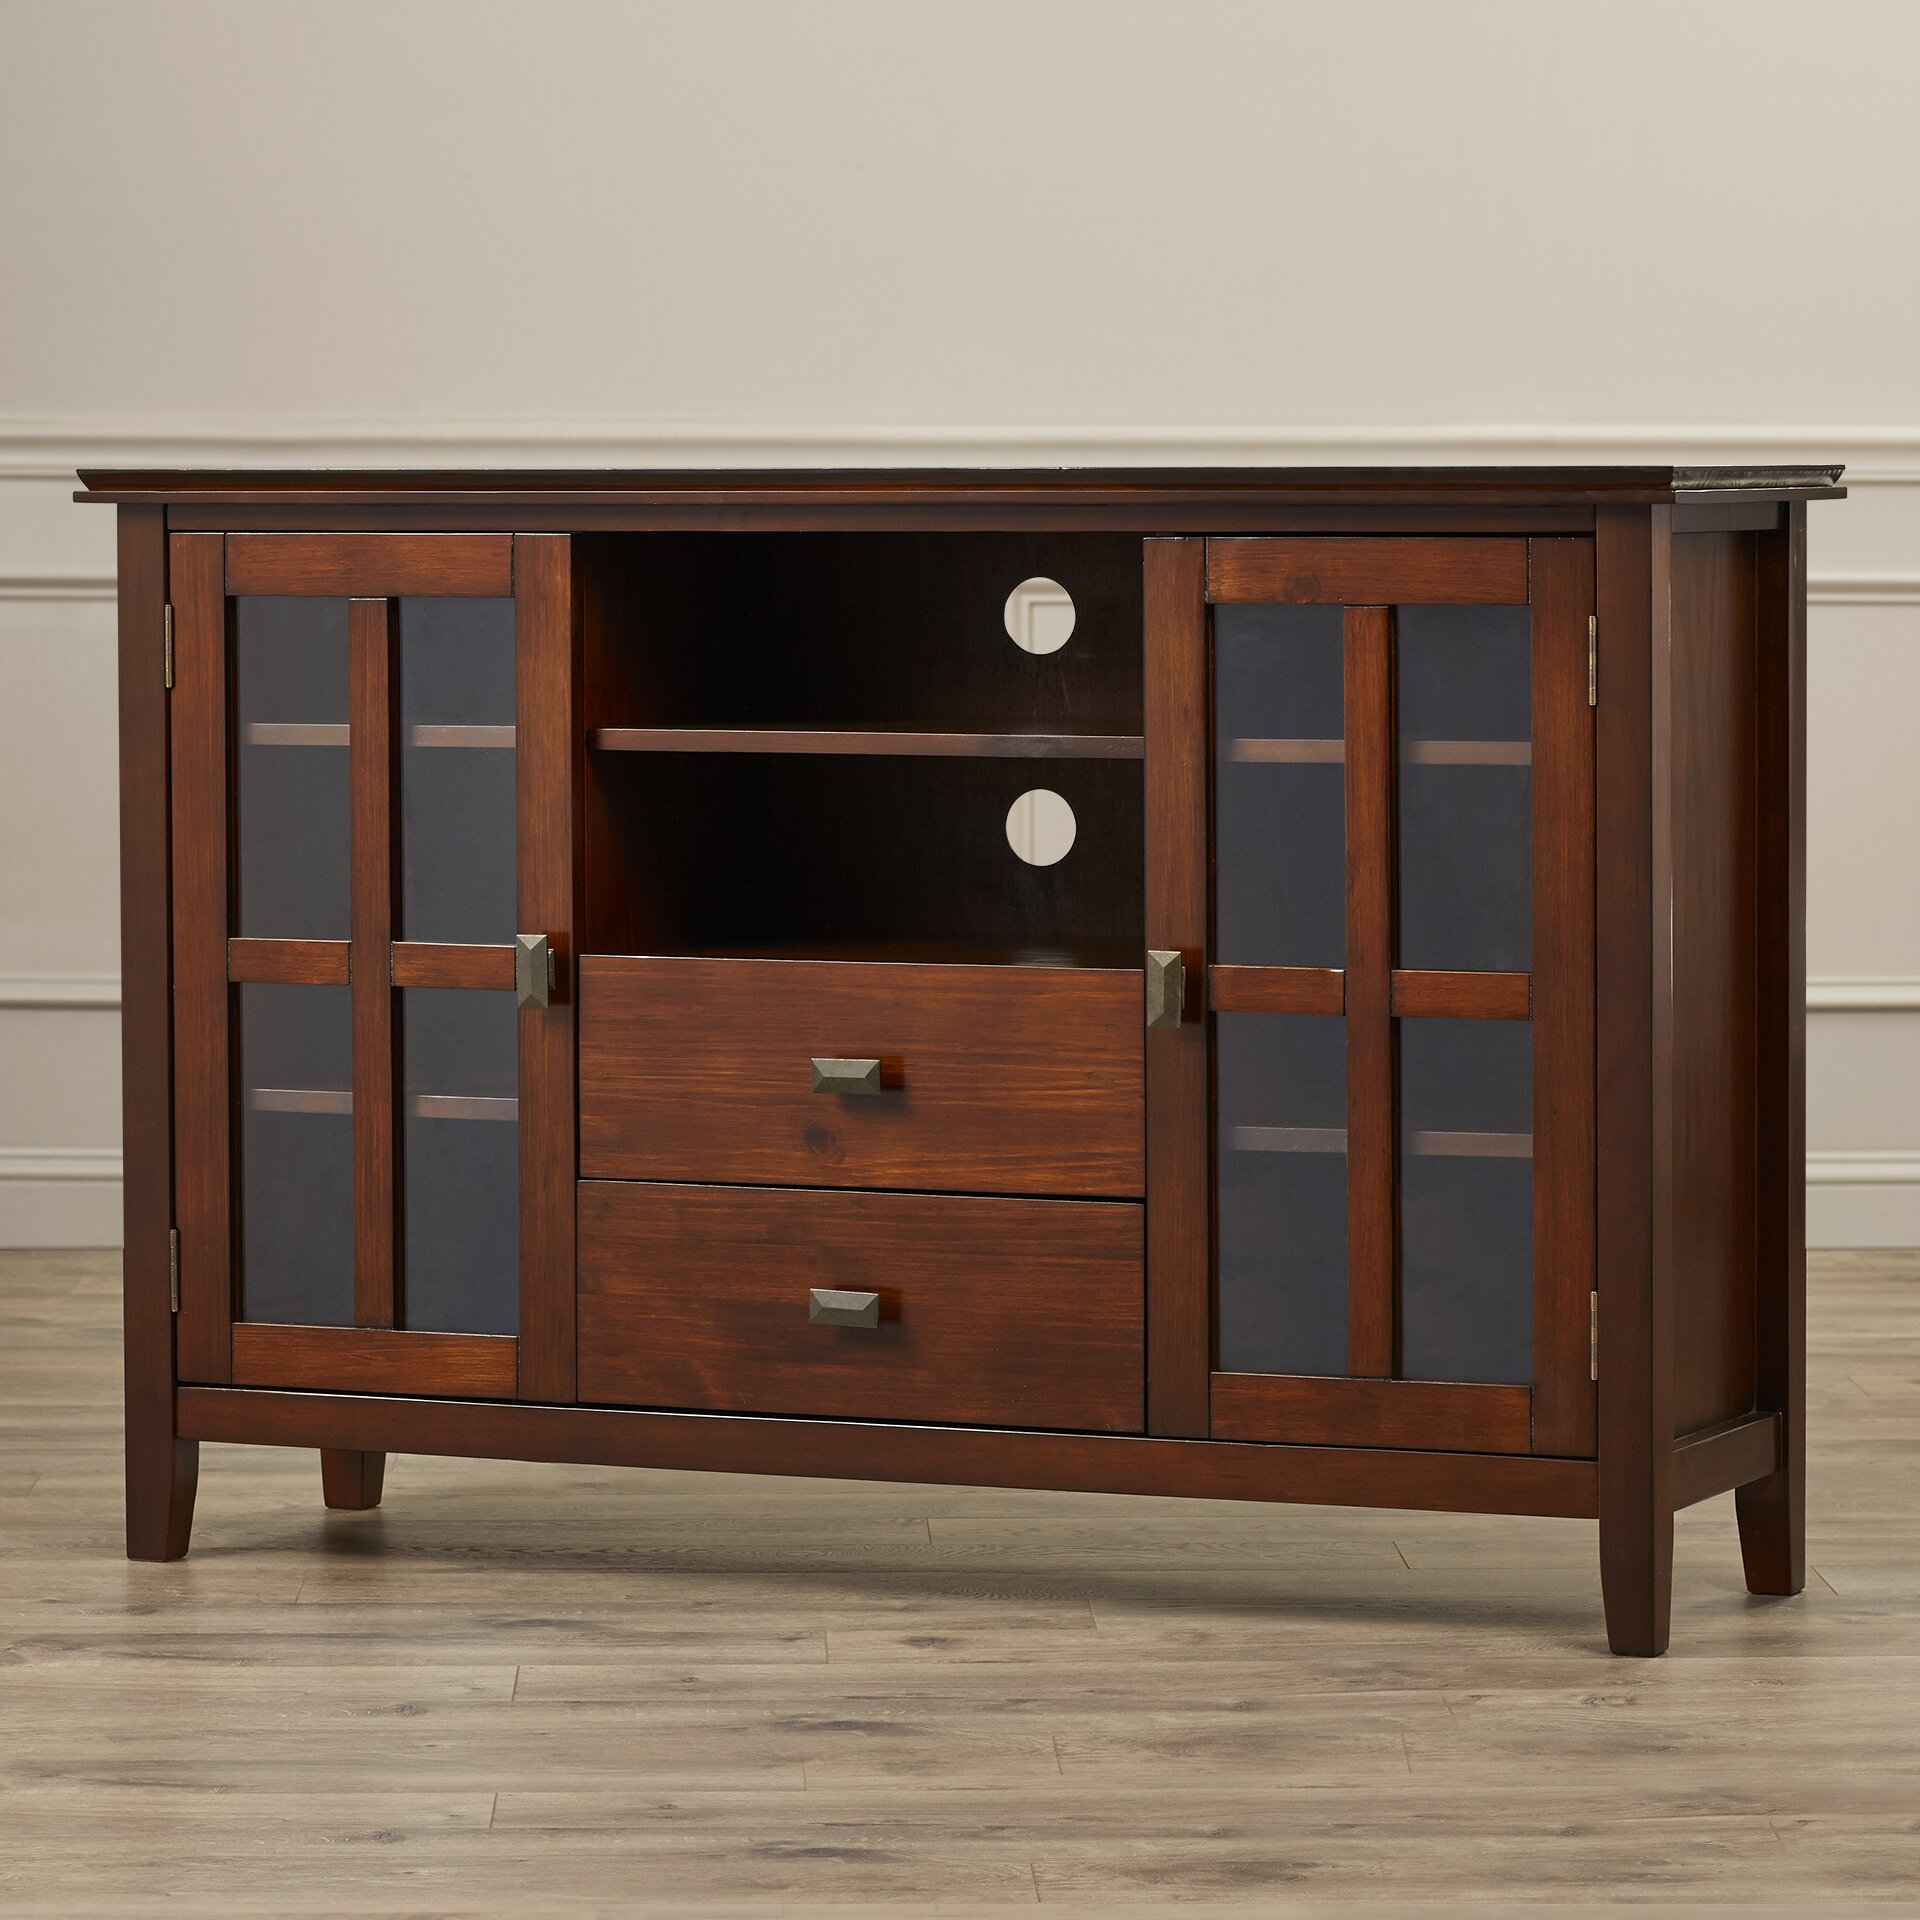 Amazing photo of Screen Tv Armoire Furniture. Second sun.co with #663B28 color and 1920x1920 pixels